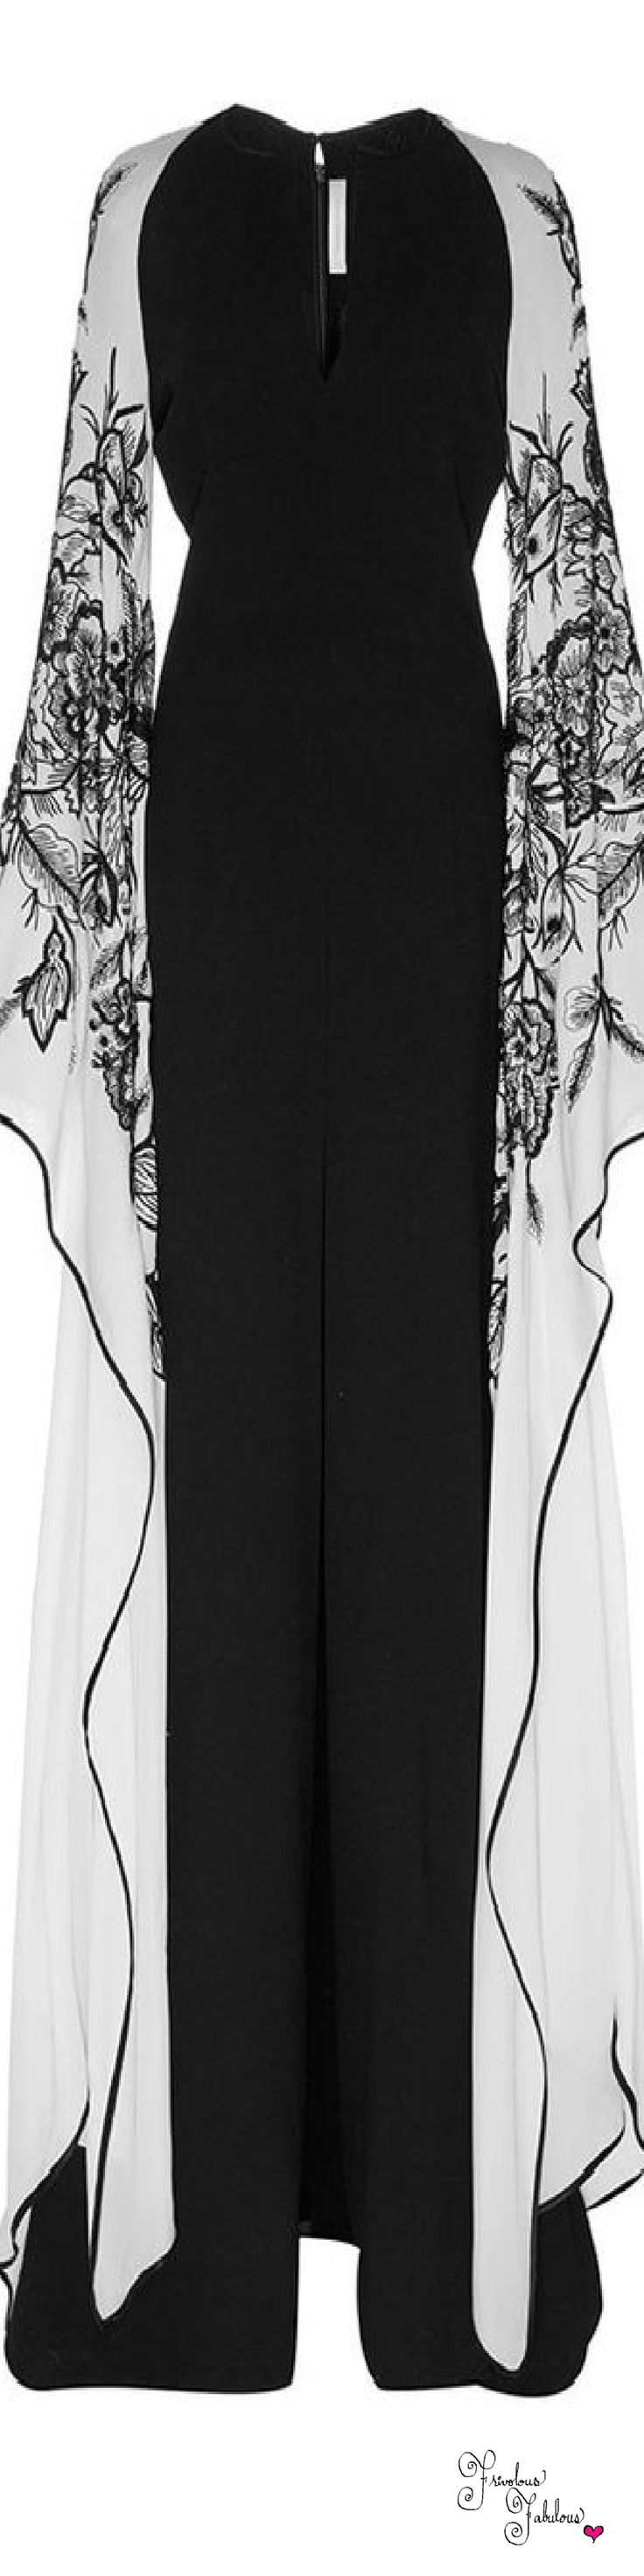 Frivolous Fabulous - Naeem Khan Fall Winter 2015 Frivolous Fabulous Styled - black and white floral pattern on flowing sleeves - hummingbird - long gown, dress